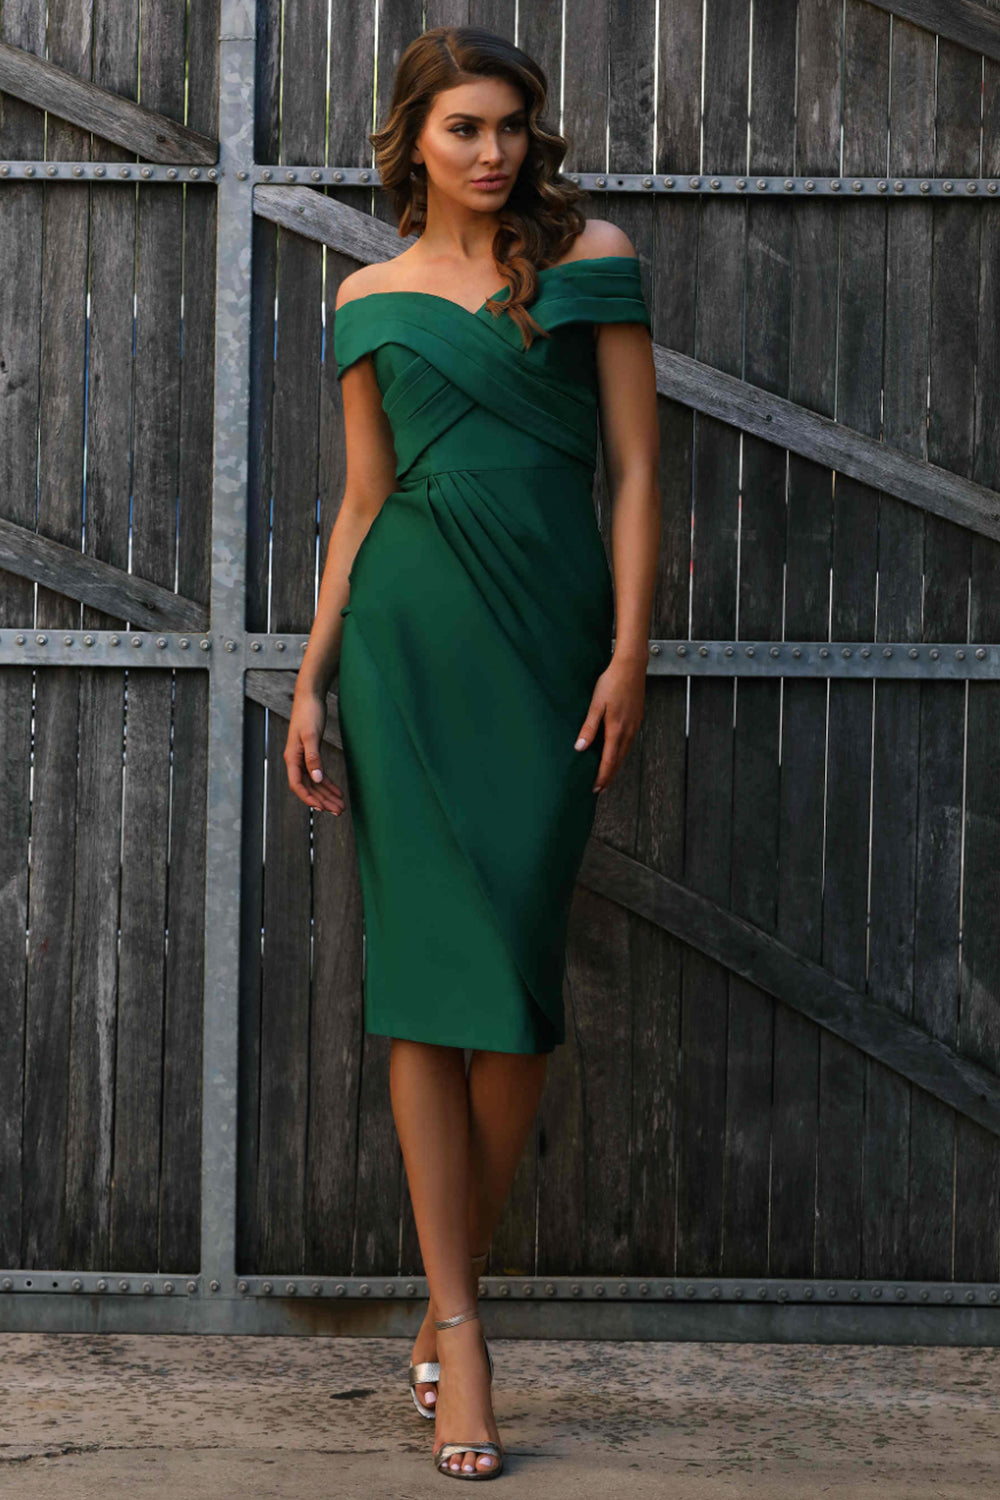 JX3050 Dress by Jadore - Emerald